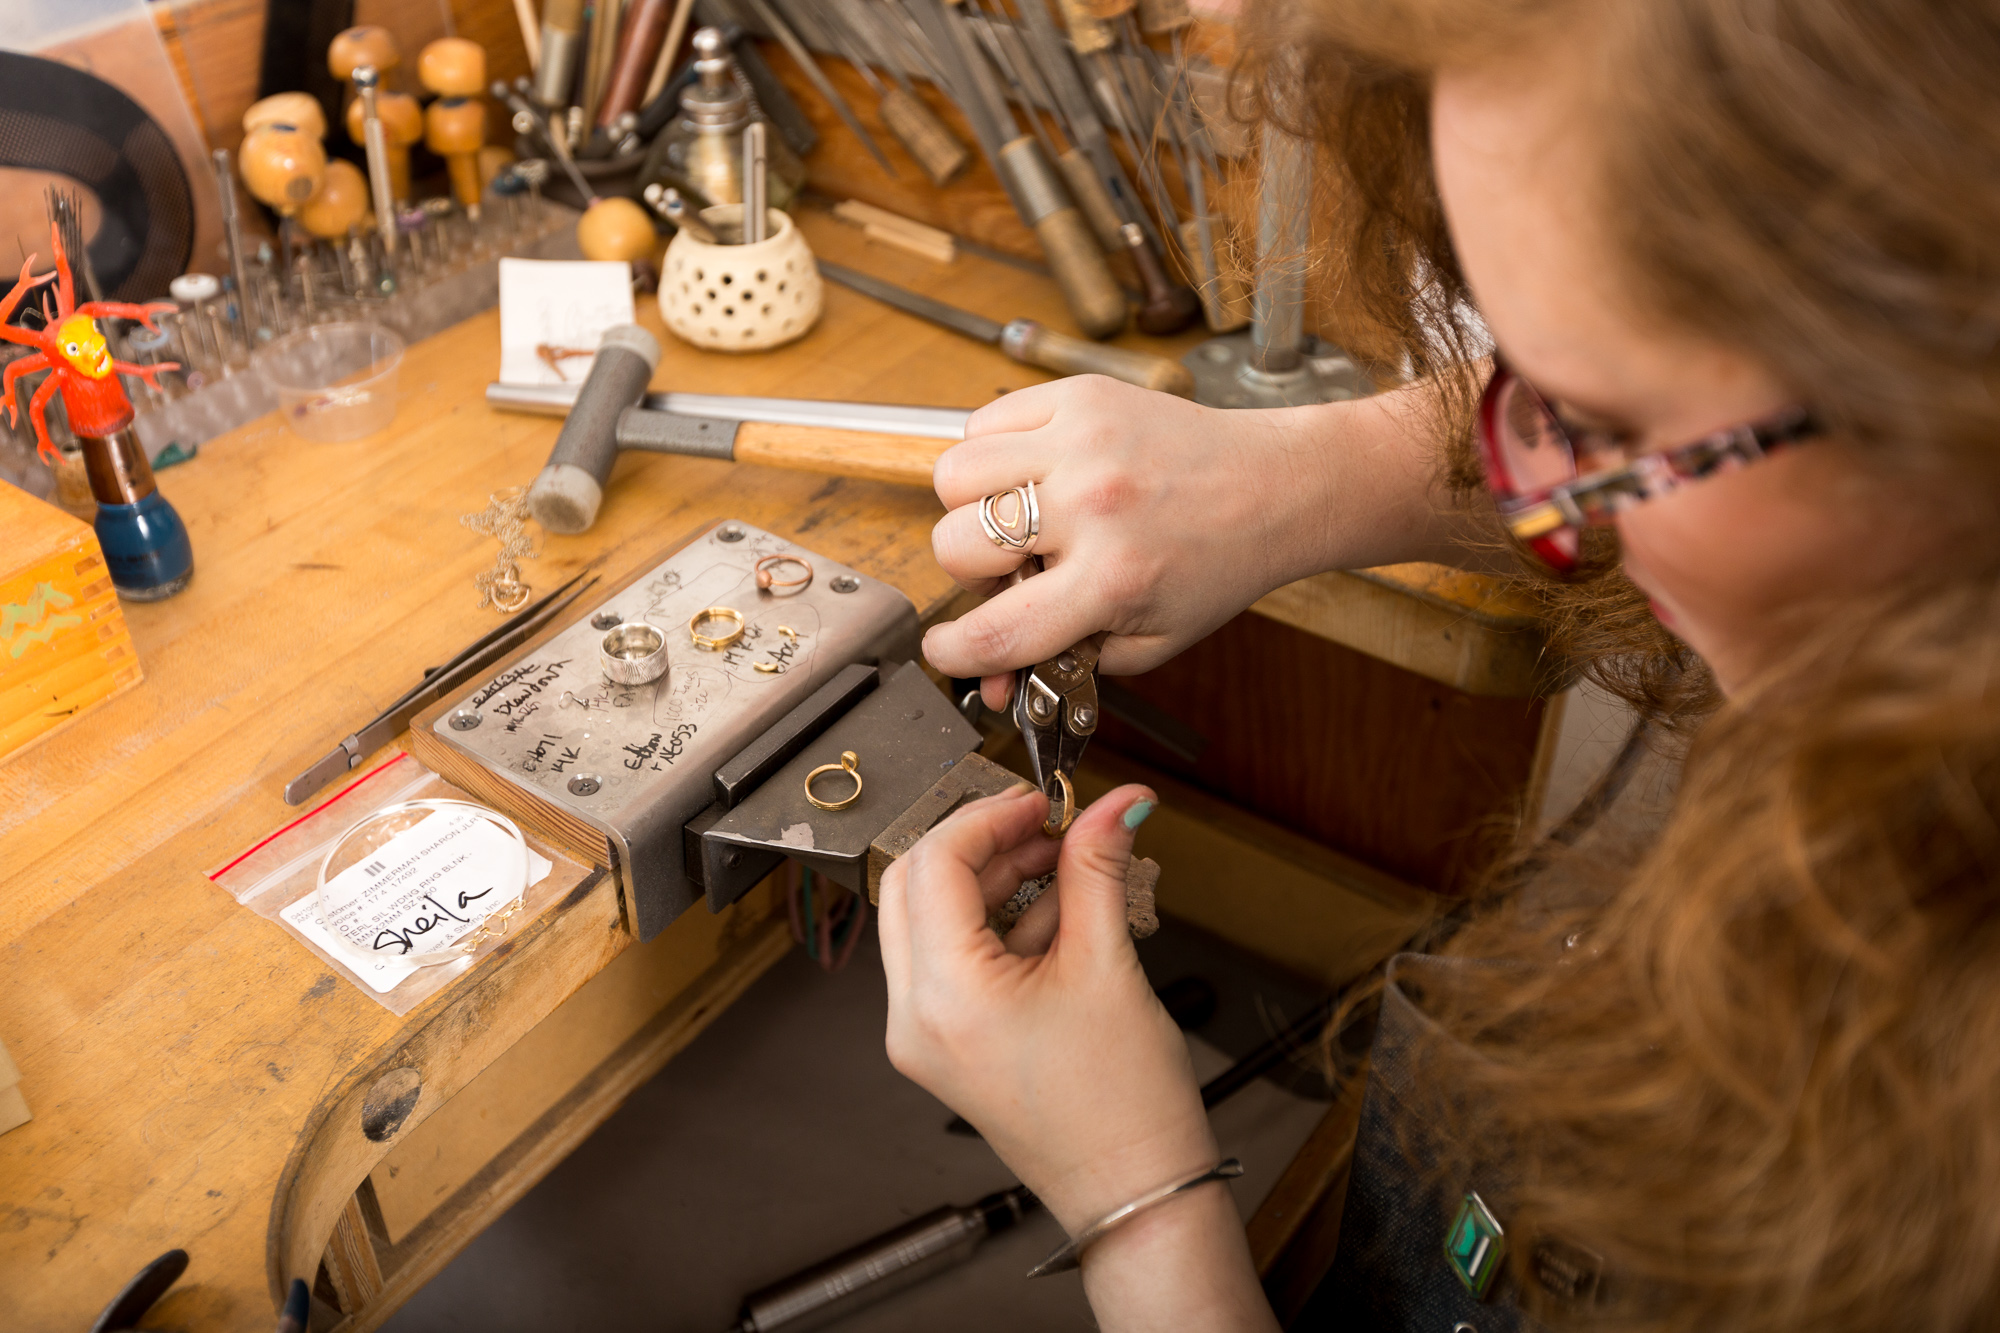 Take a private jewelry Class with Sharon Zimmerman - Image credit Ryan Leggett